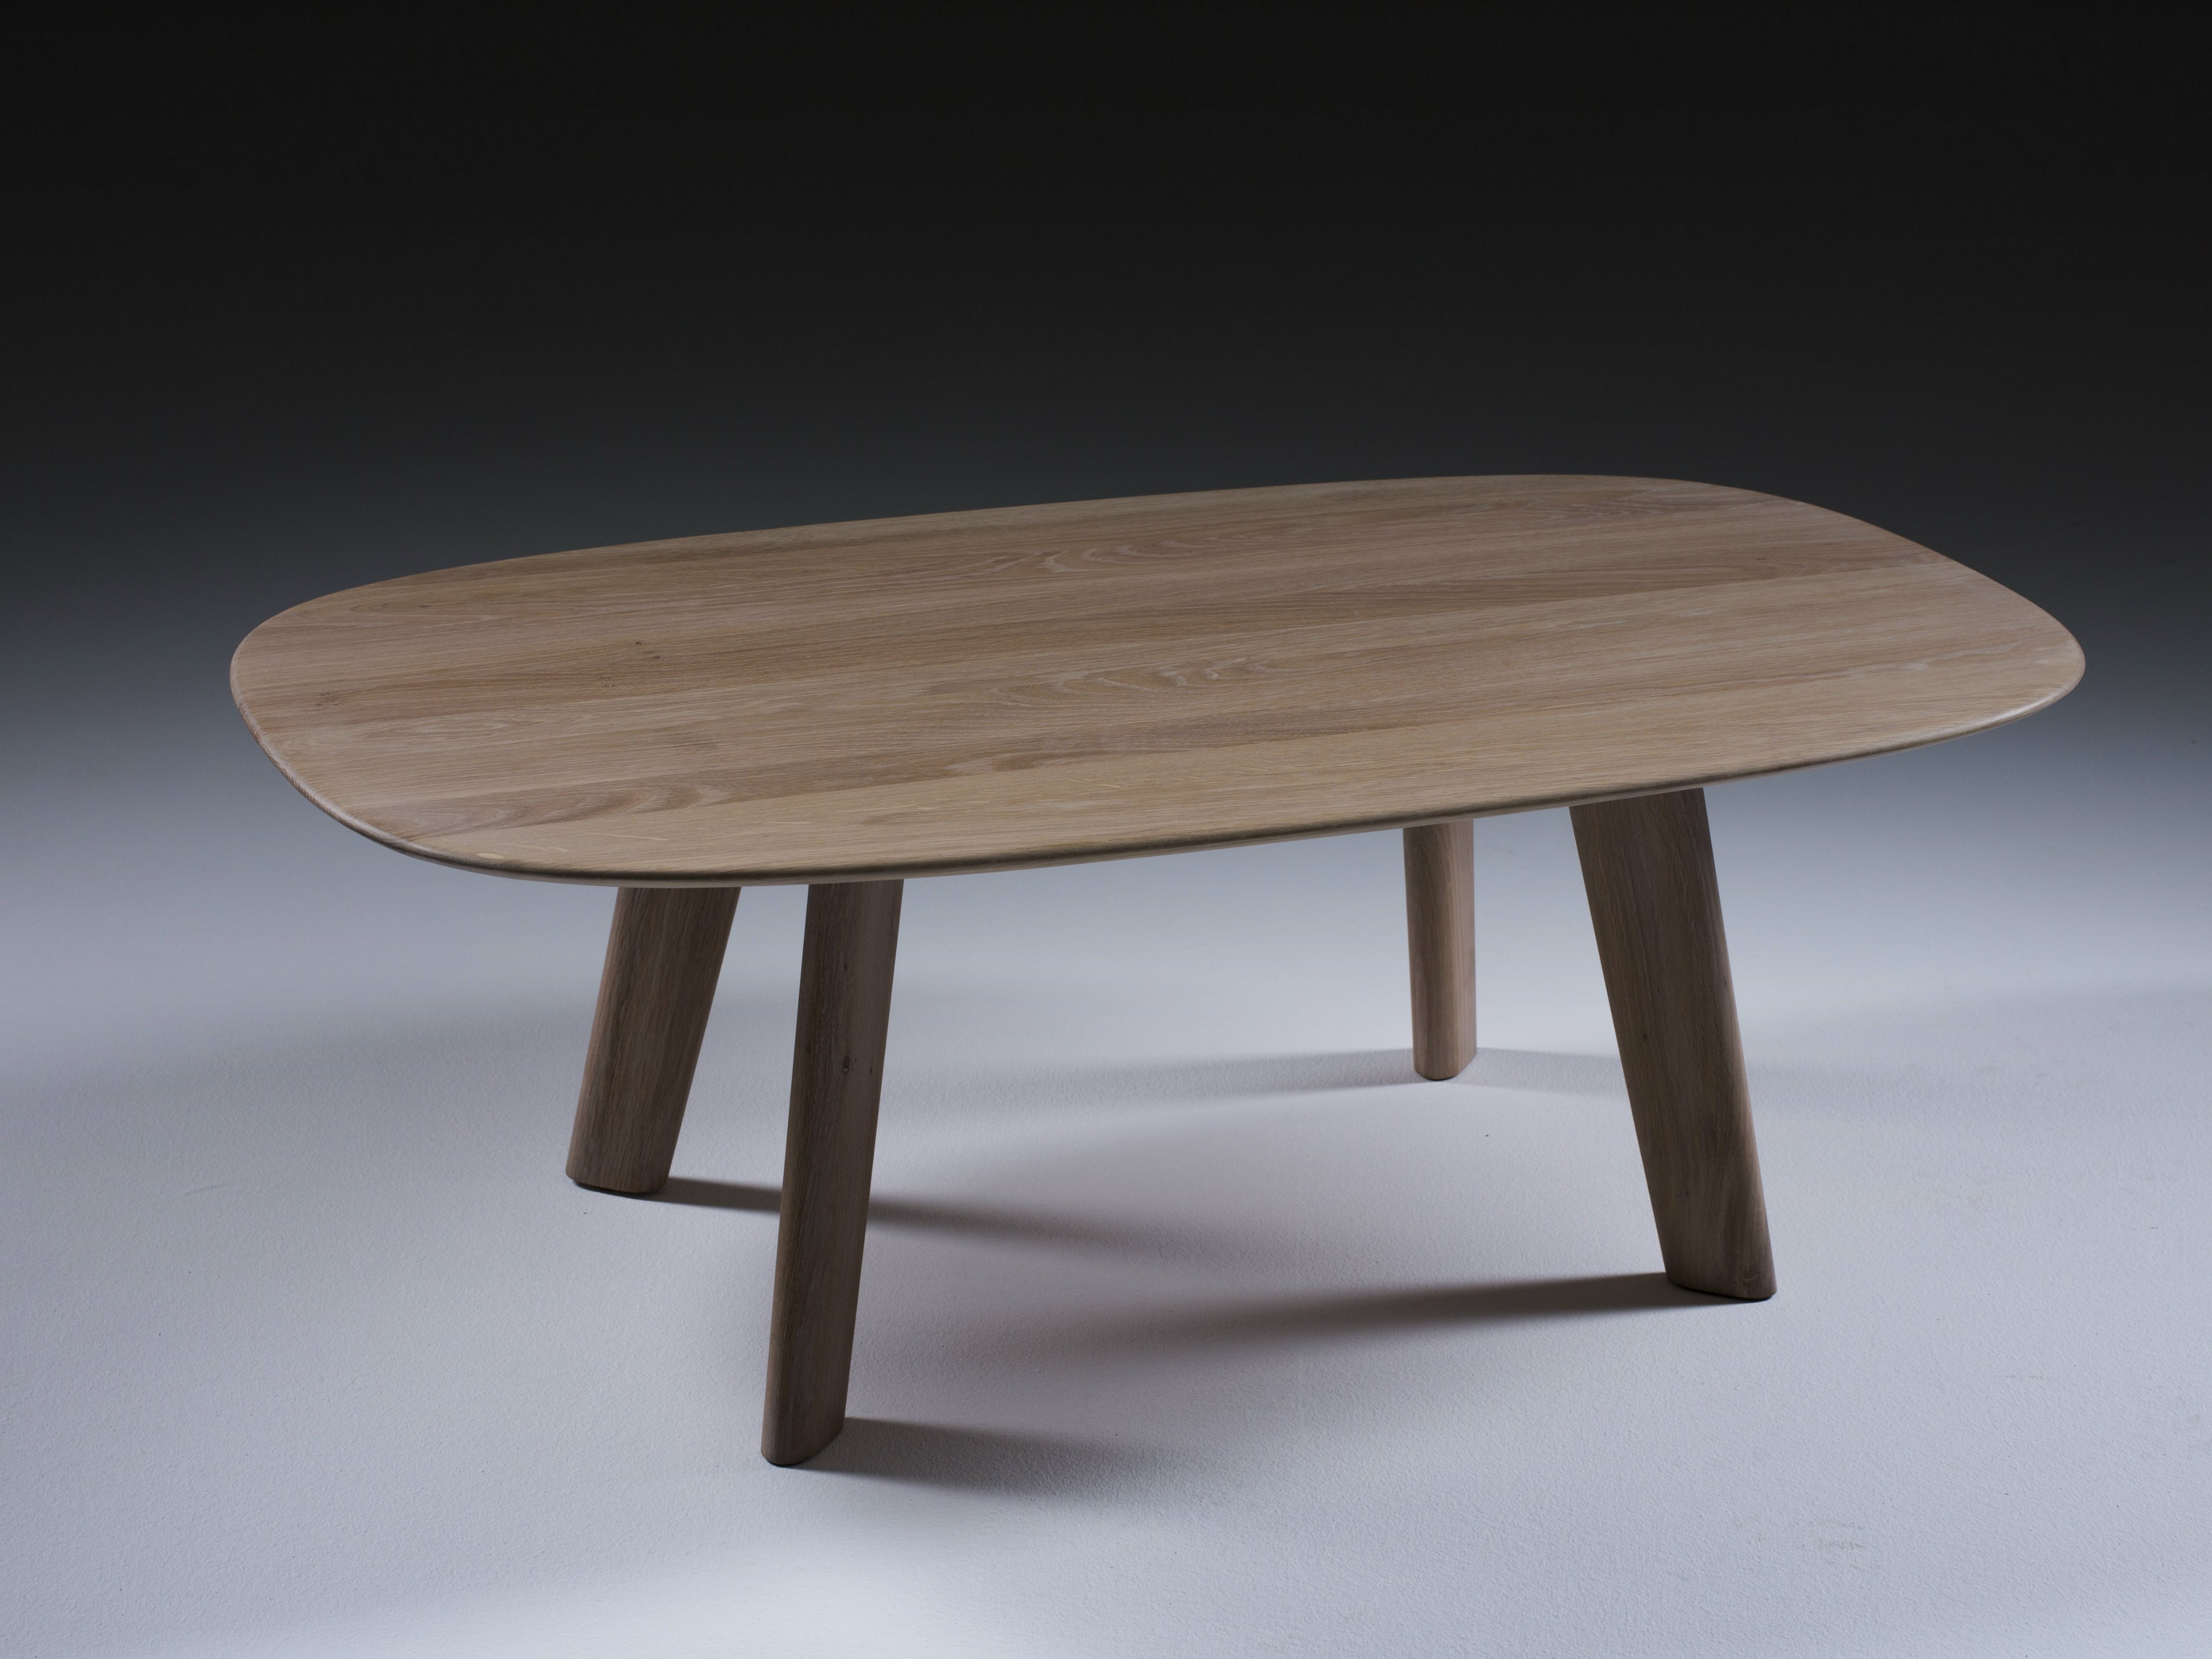 Oval Wooden Coffee Table AB OVO By Dizzconcept Design Armano Linta D.o.o.